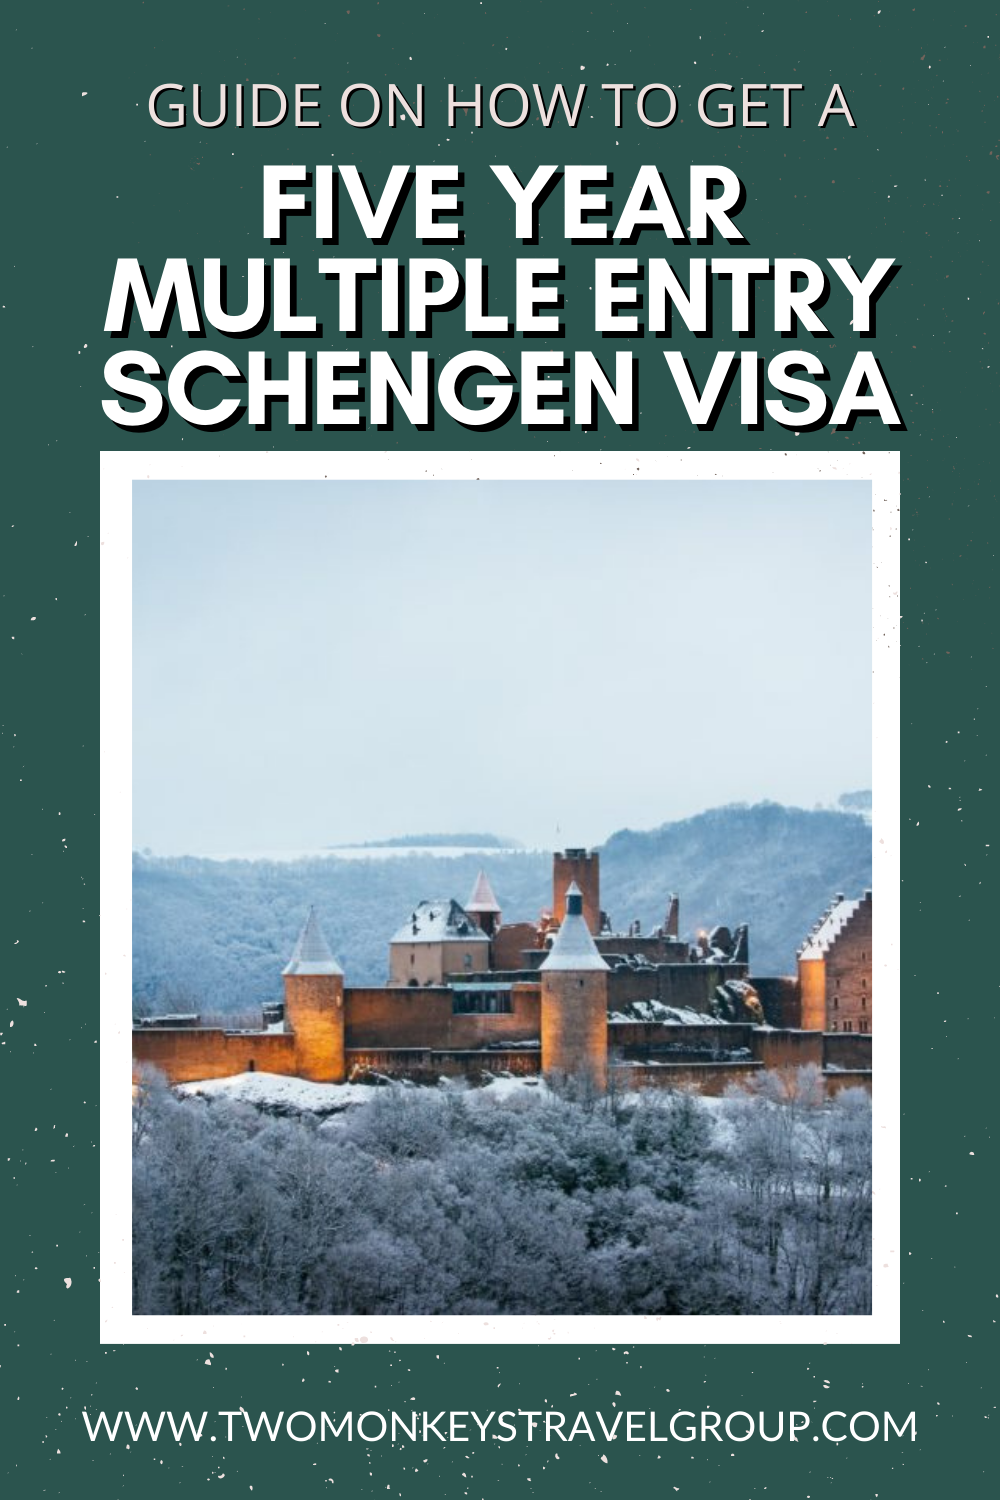 How to Get a Five Year Multiple Entry Schengen Visa for Filipino Citizens